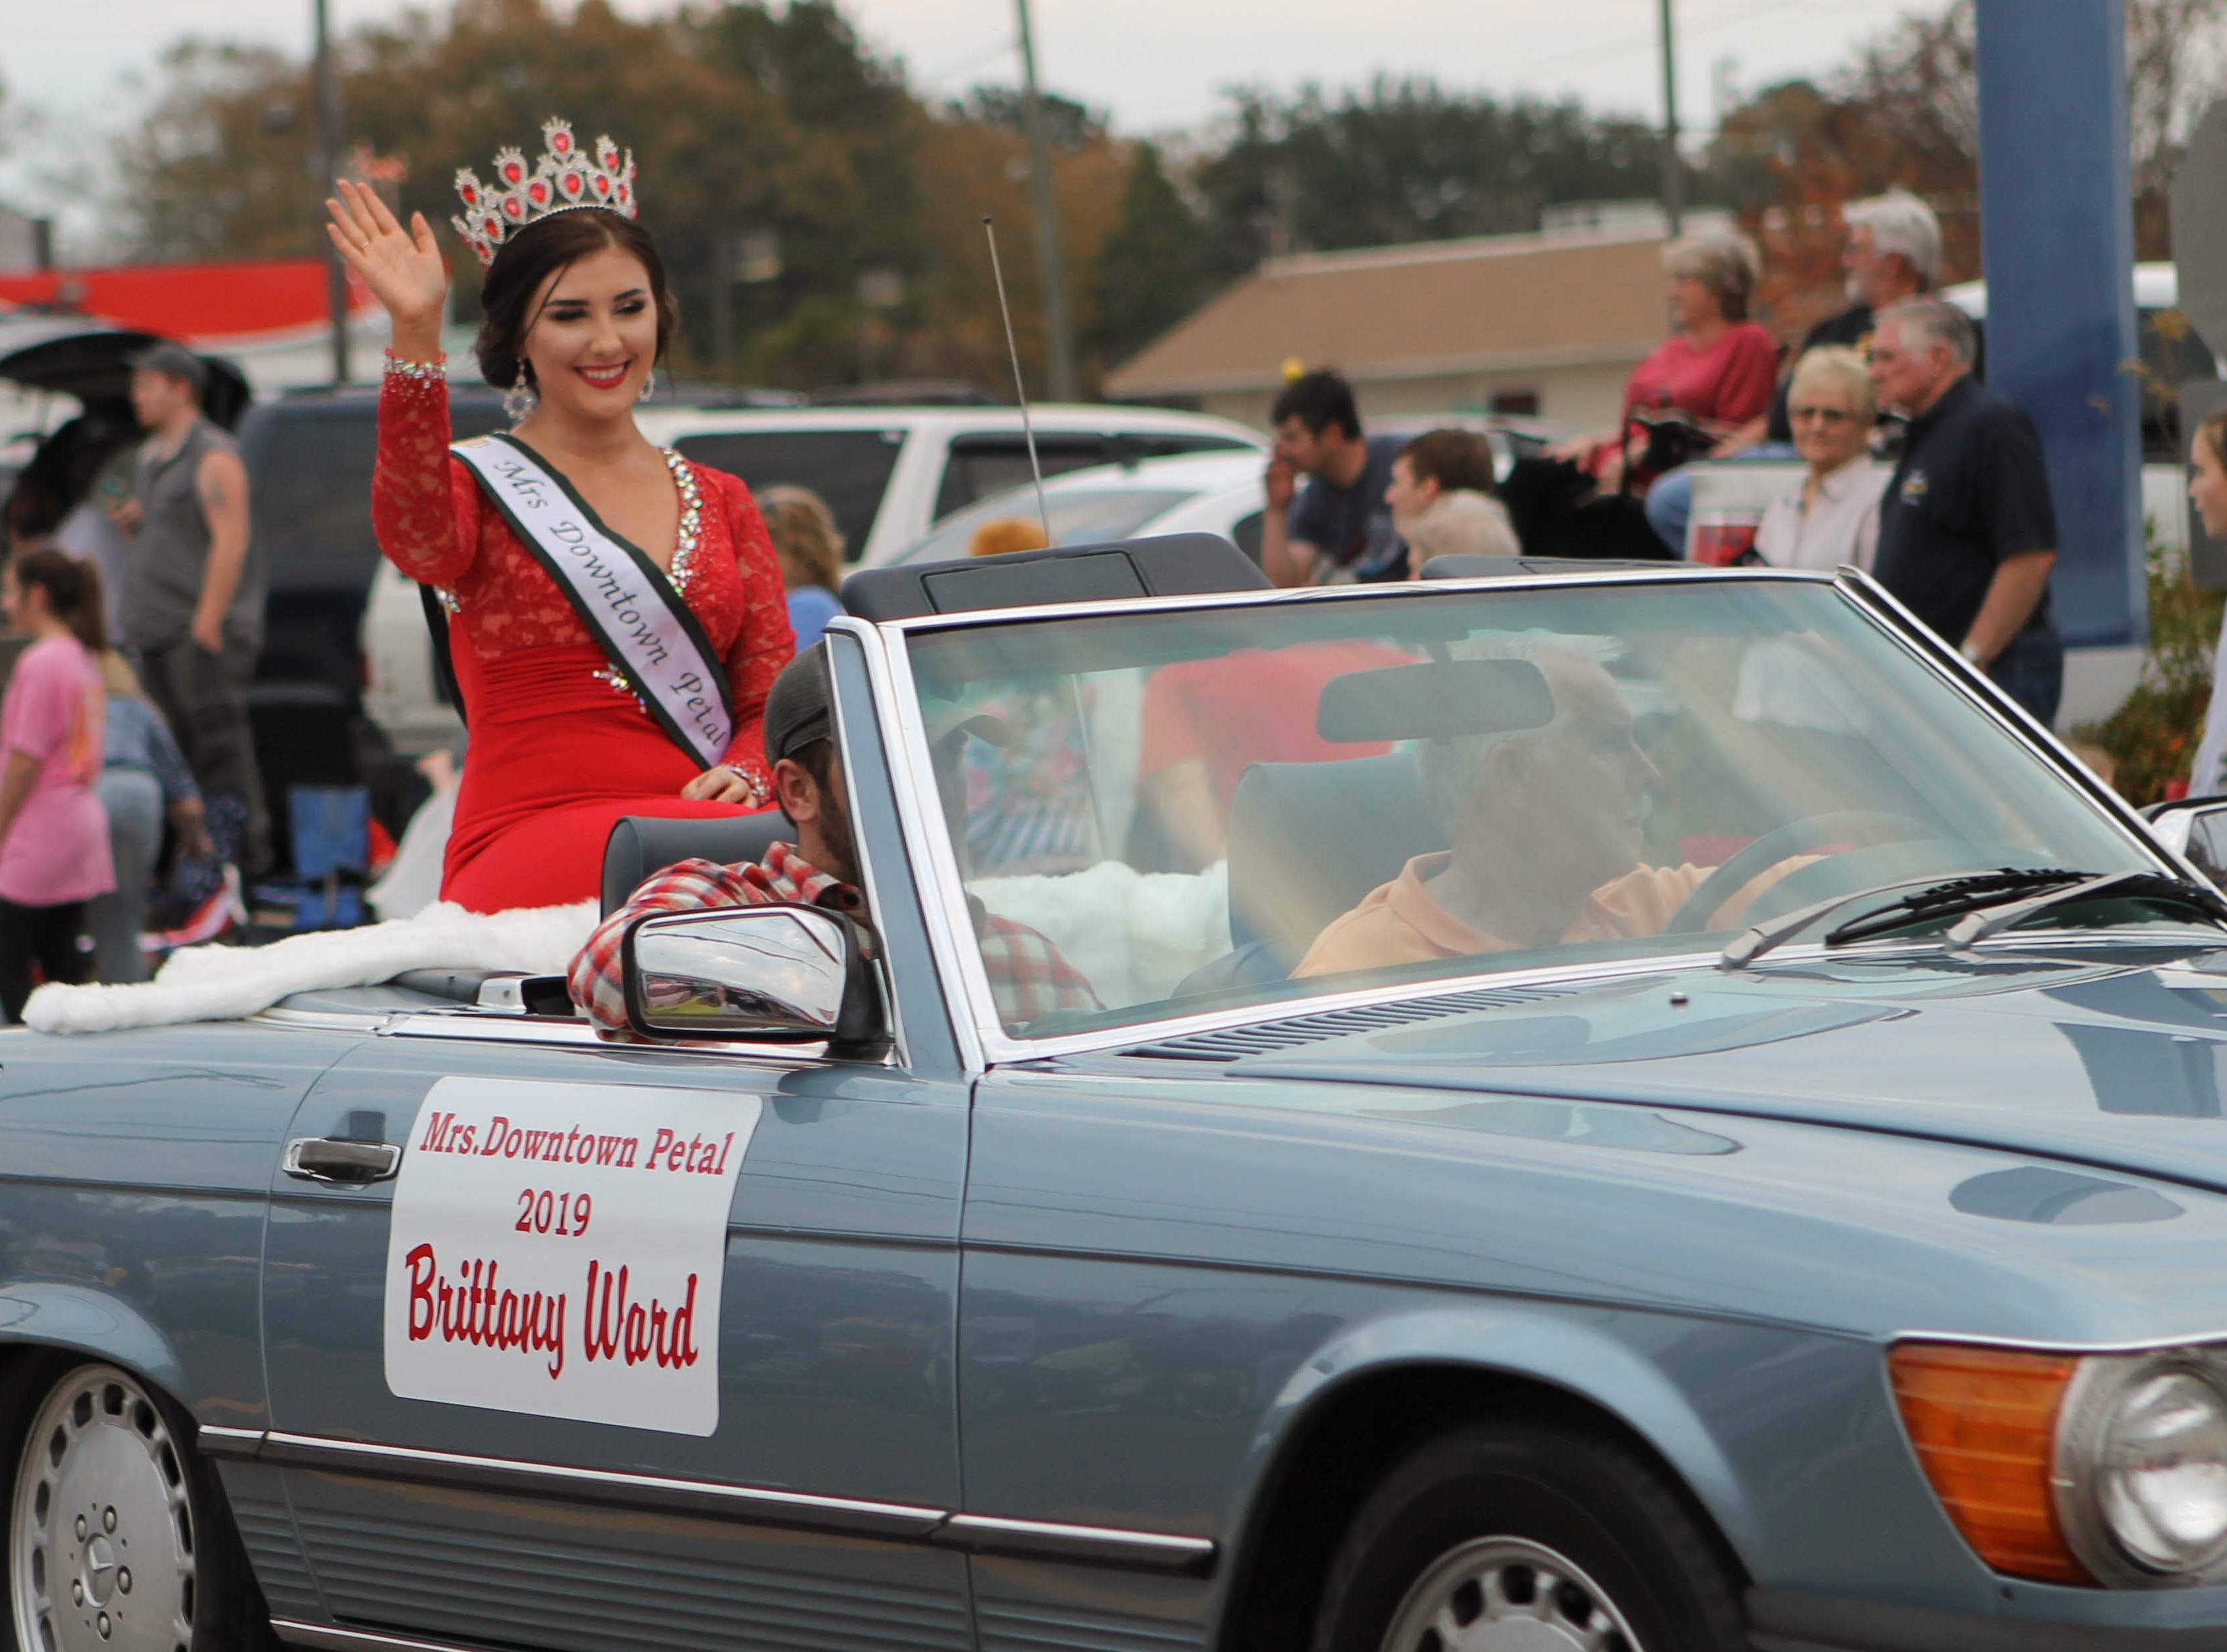 Miss Downtown Petal 2019, Brittany Ward, waves to the crowd of the Petal Christmas Parade on Saturday, December 1, 2018.